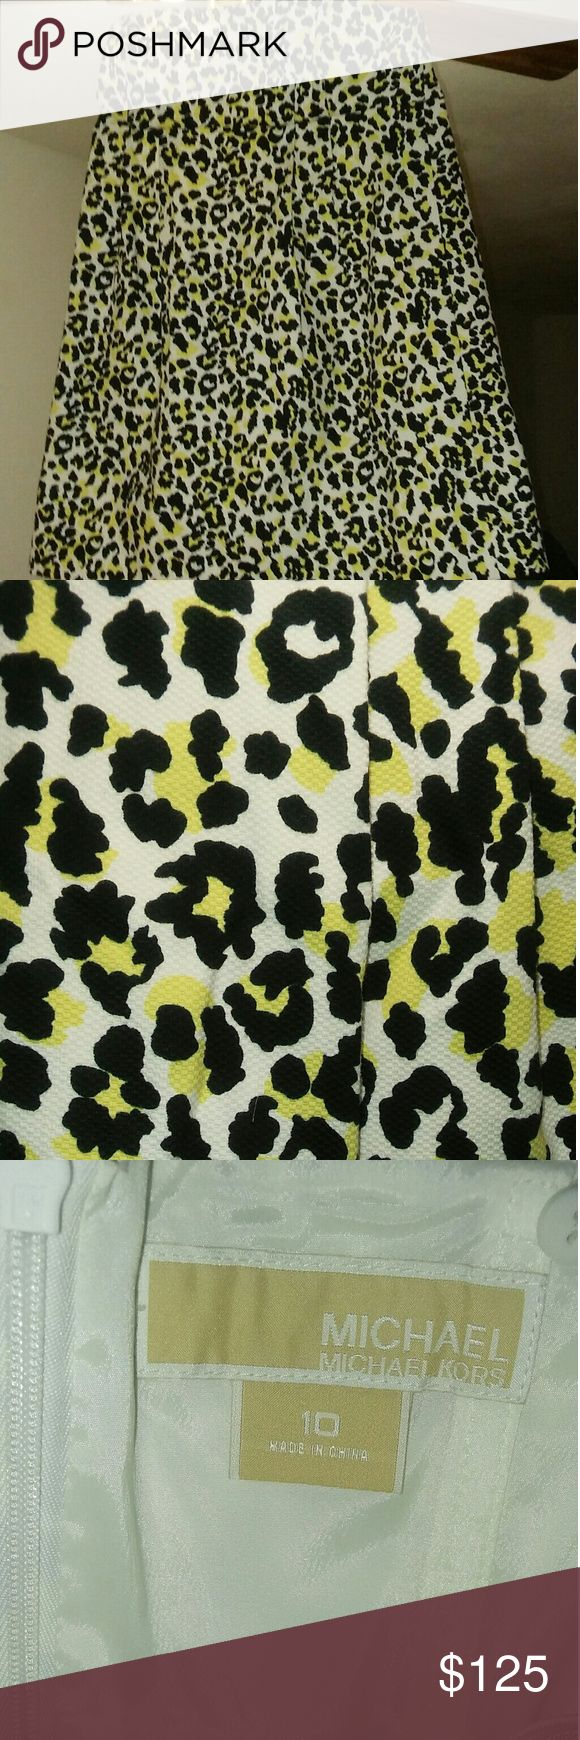 NWOT MK Strapless Cheetah Print Dress Animal print strapless Yellow/Black/White above the knee length dress!!! Never worn in Excellent Condition. Says size 10 but it's too big for me to wear. Runs larger like size 12-14. Micheal Kors Dresses Strapless